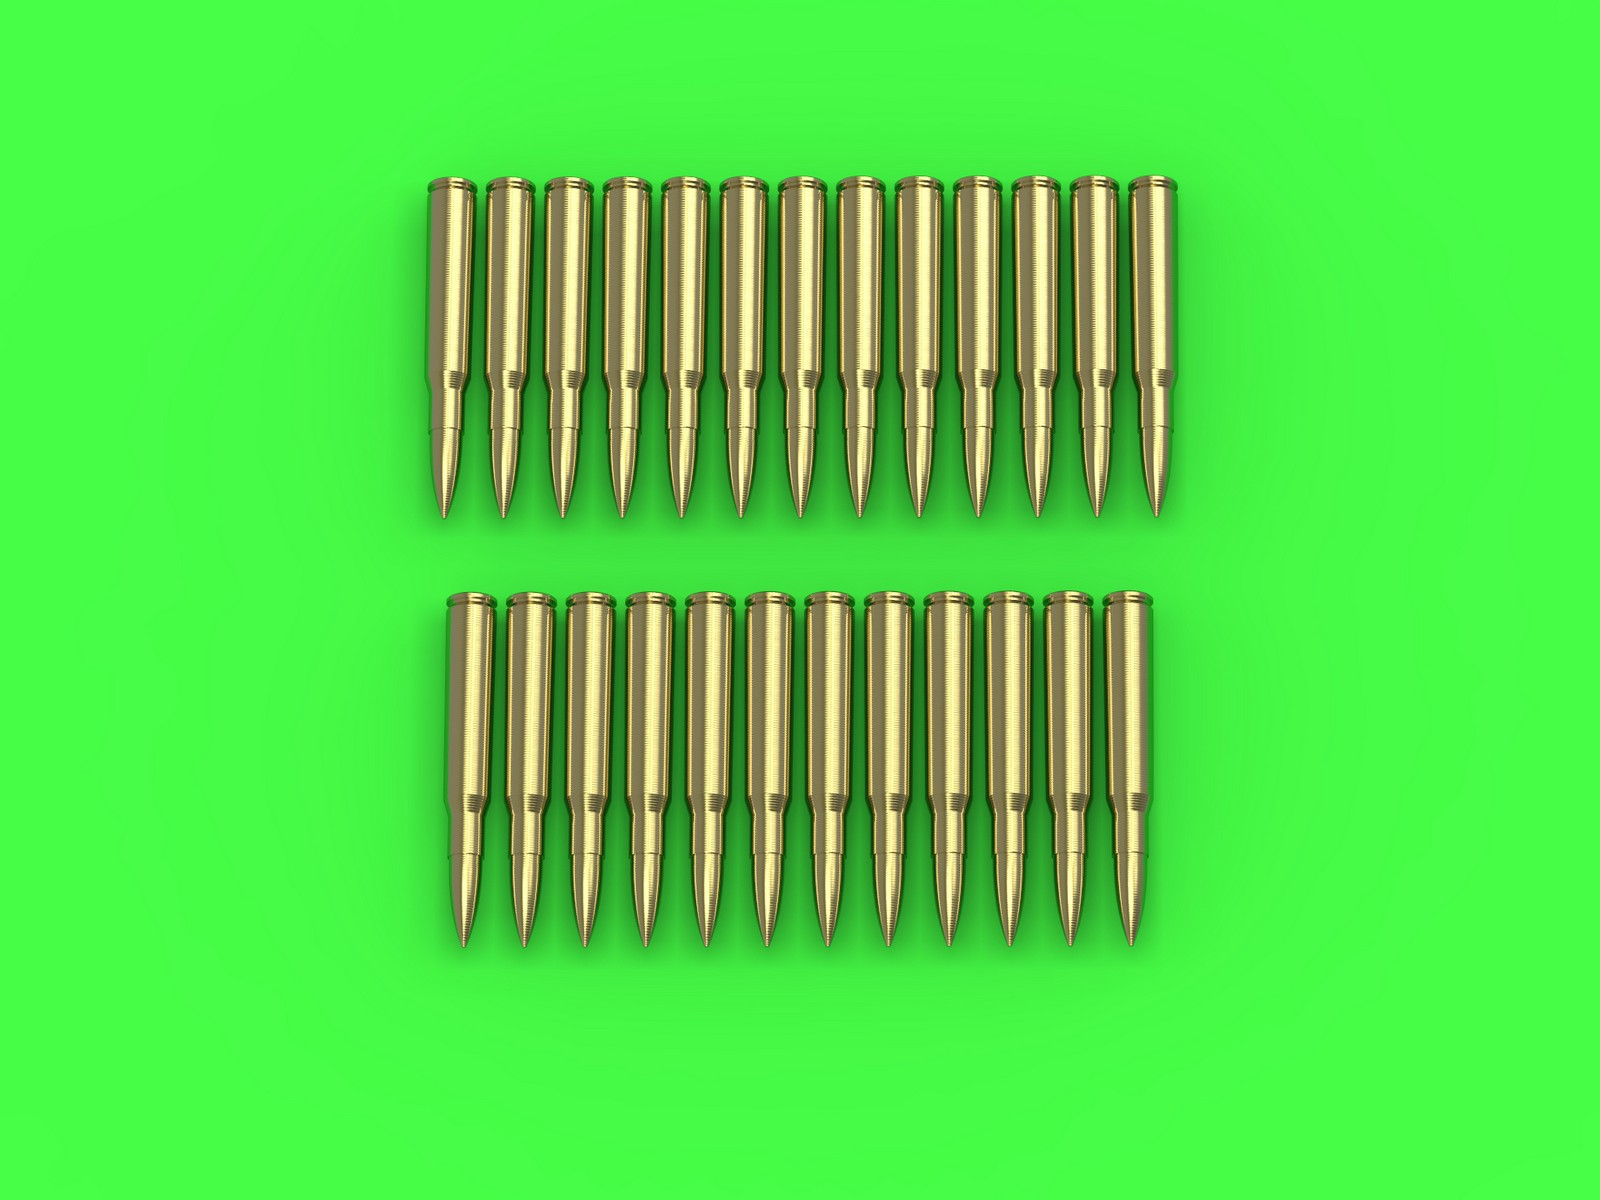 MASTER 1:35 GM35023 M1919 Browning .30 caliber (7.62mm) - cartridges (25pcs)